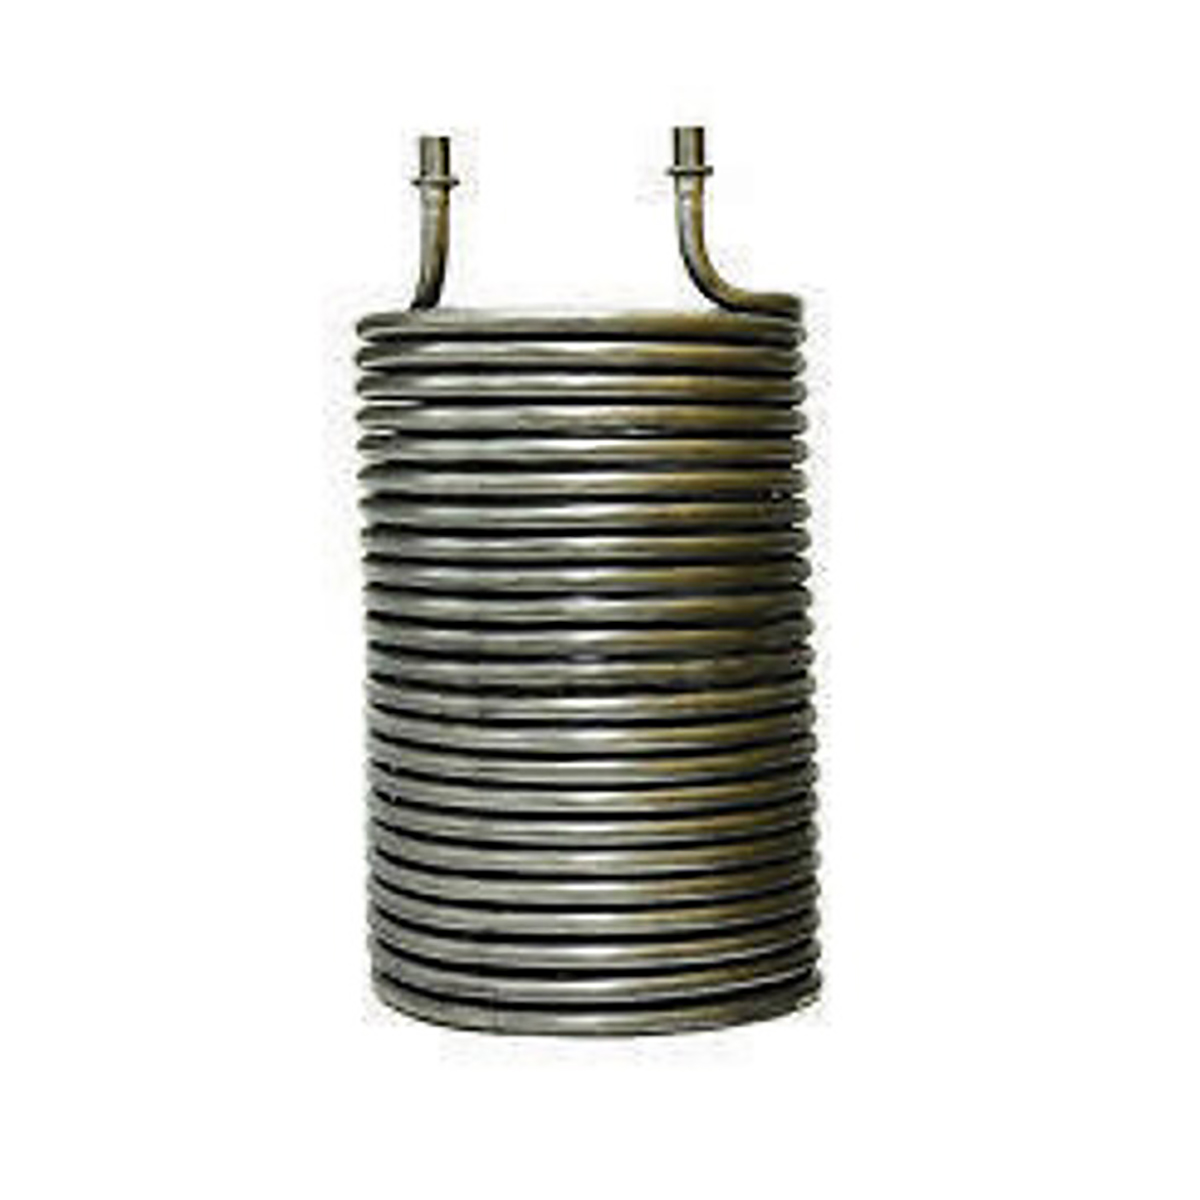 LAFN46850  HotWash Heating Coil Stainless Steel